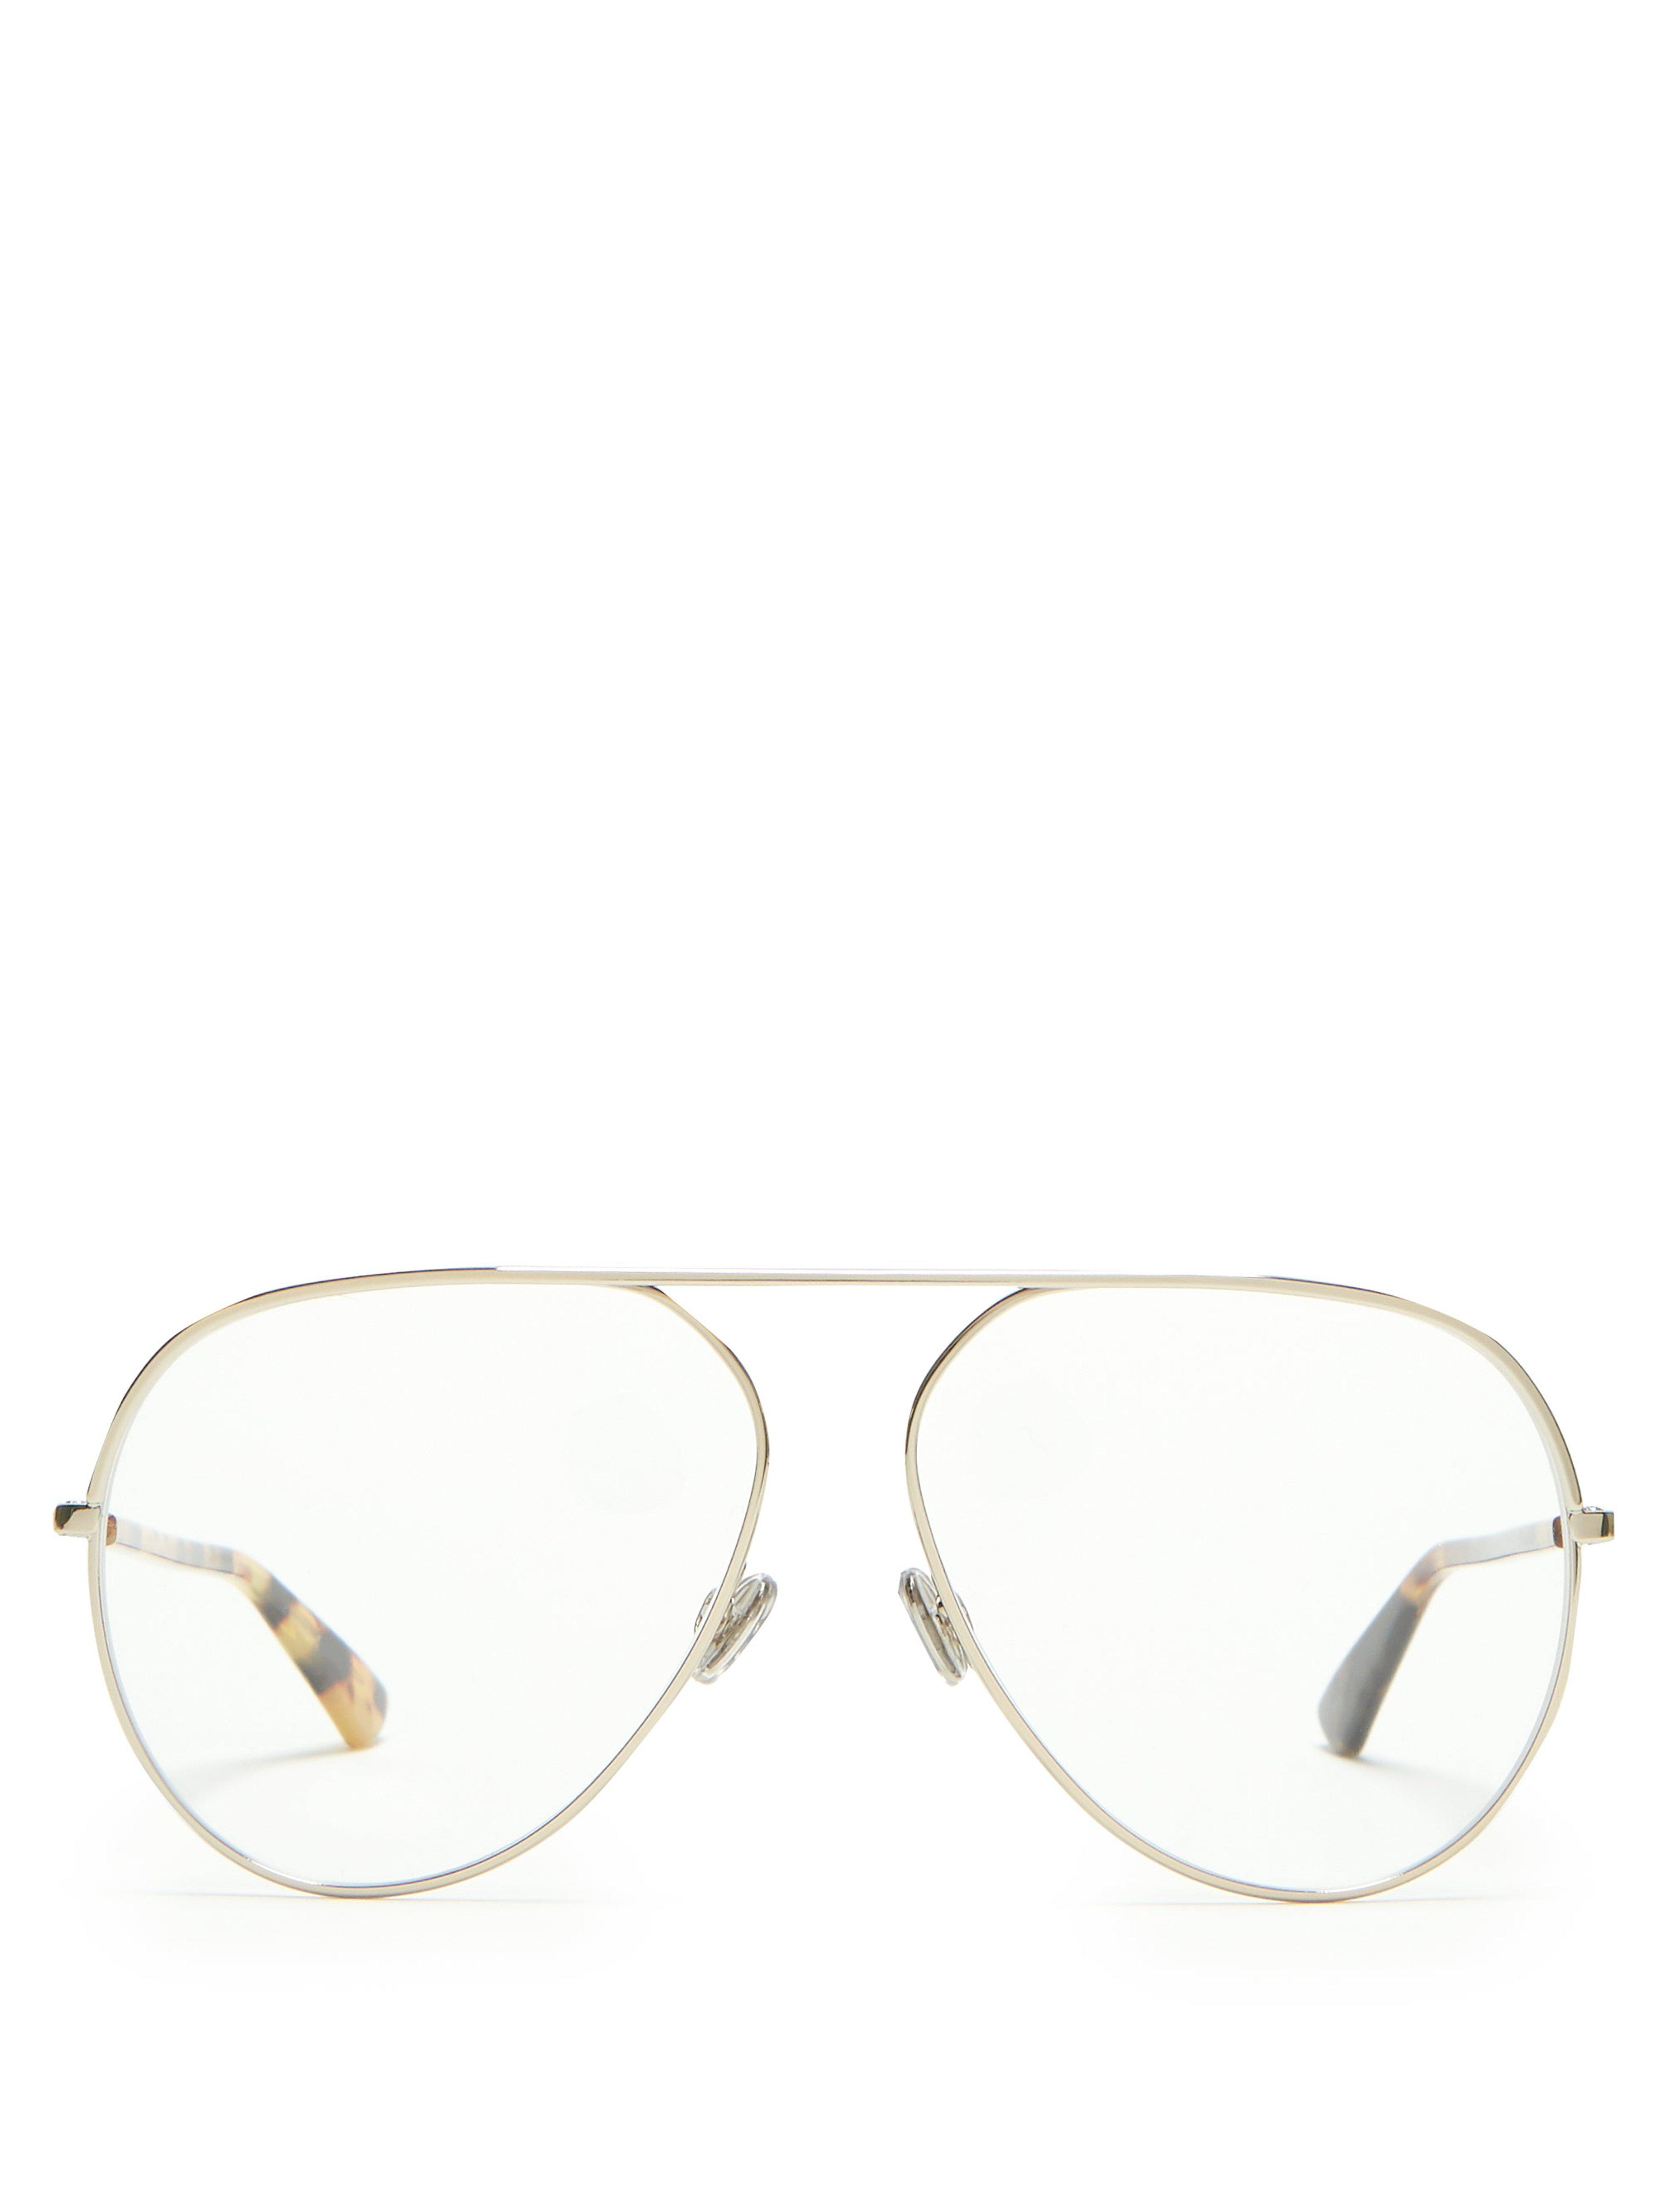 df20972efda Dior Dioressence15 Aviator Glasses in Metallic - Lyst